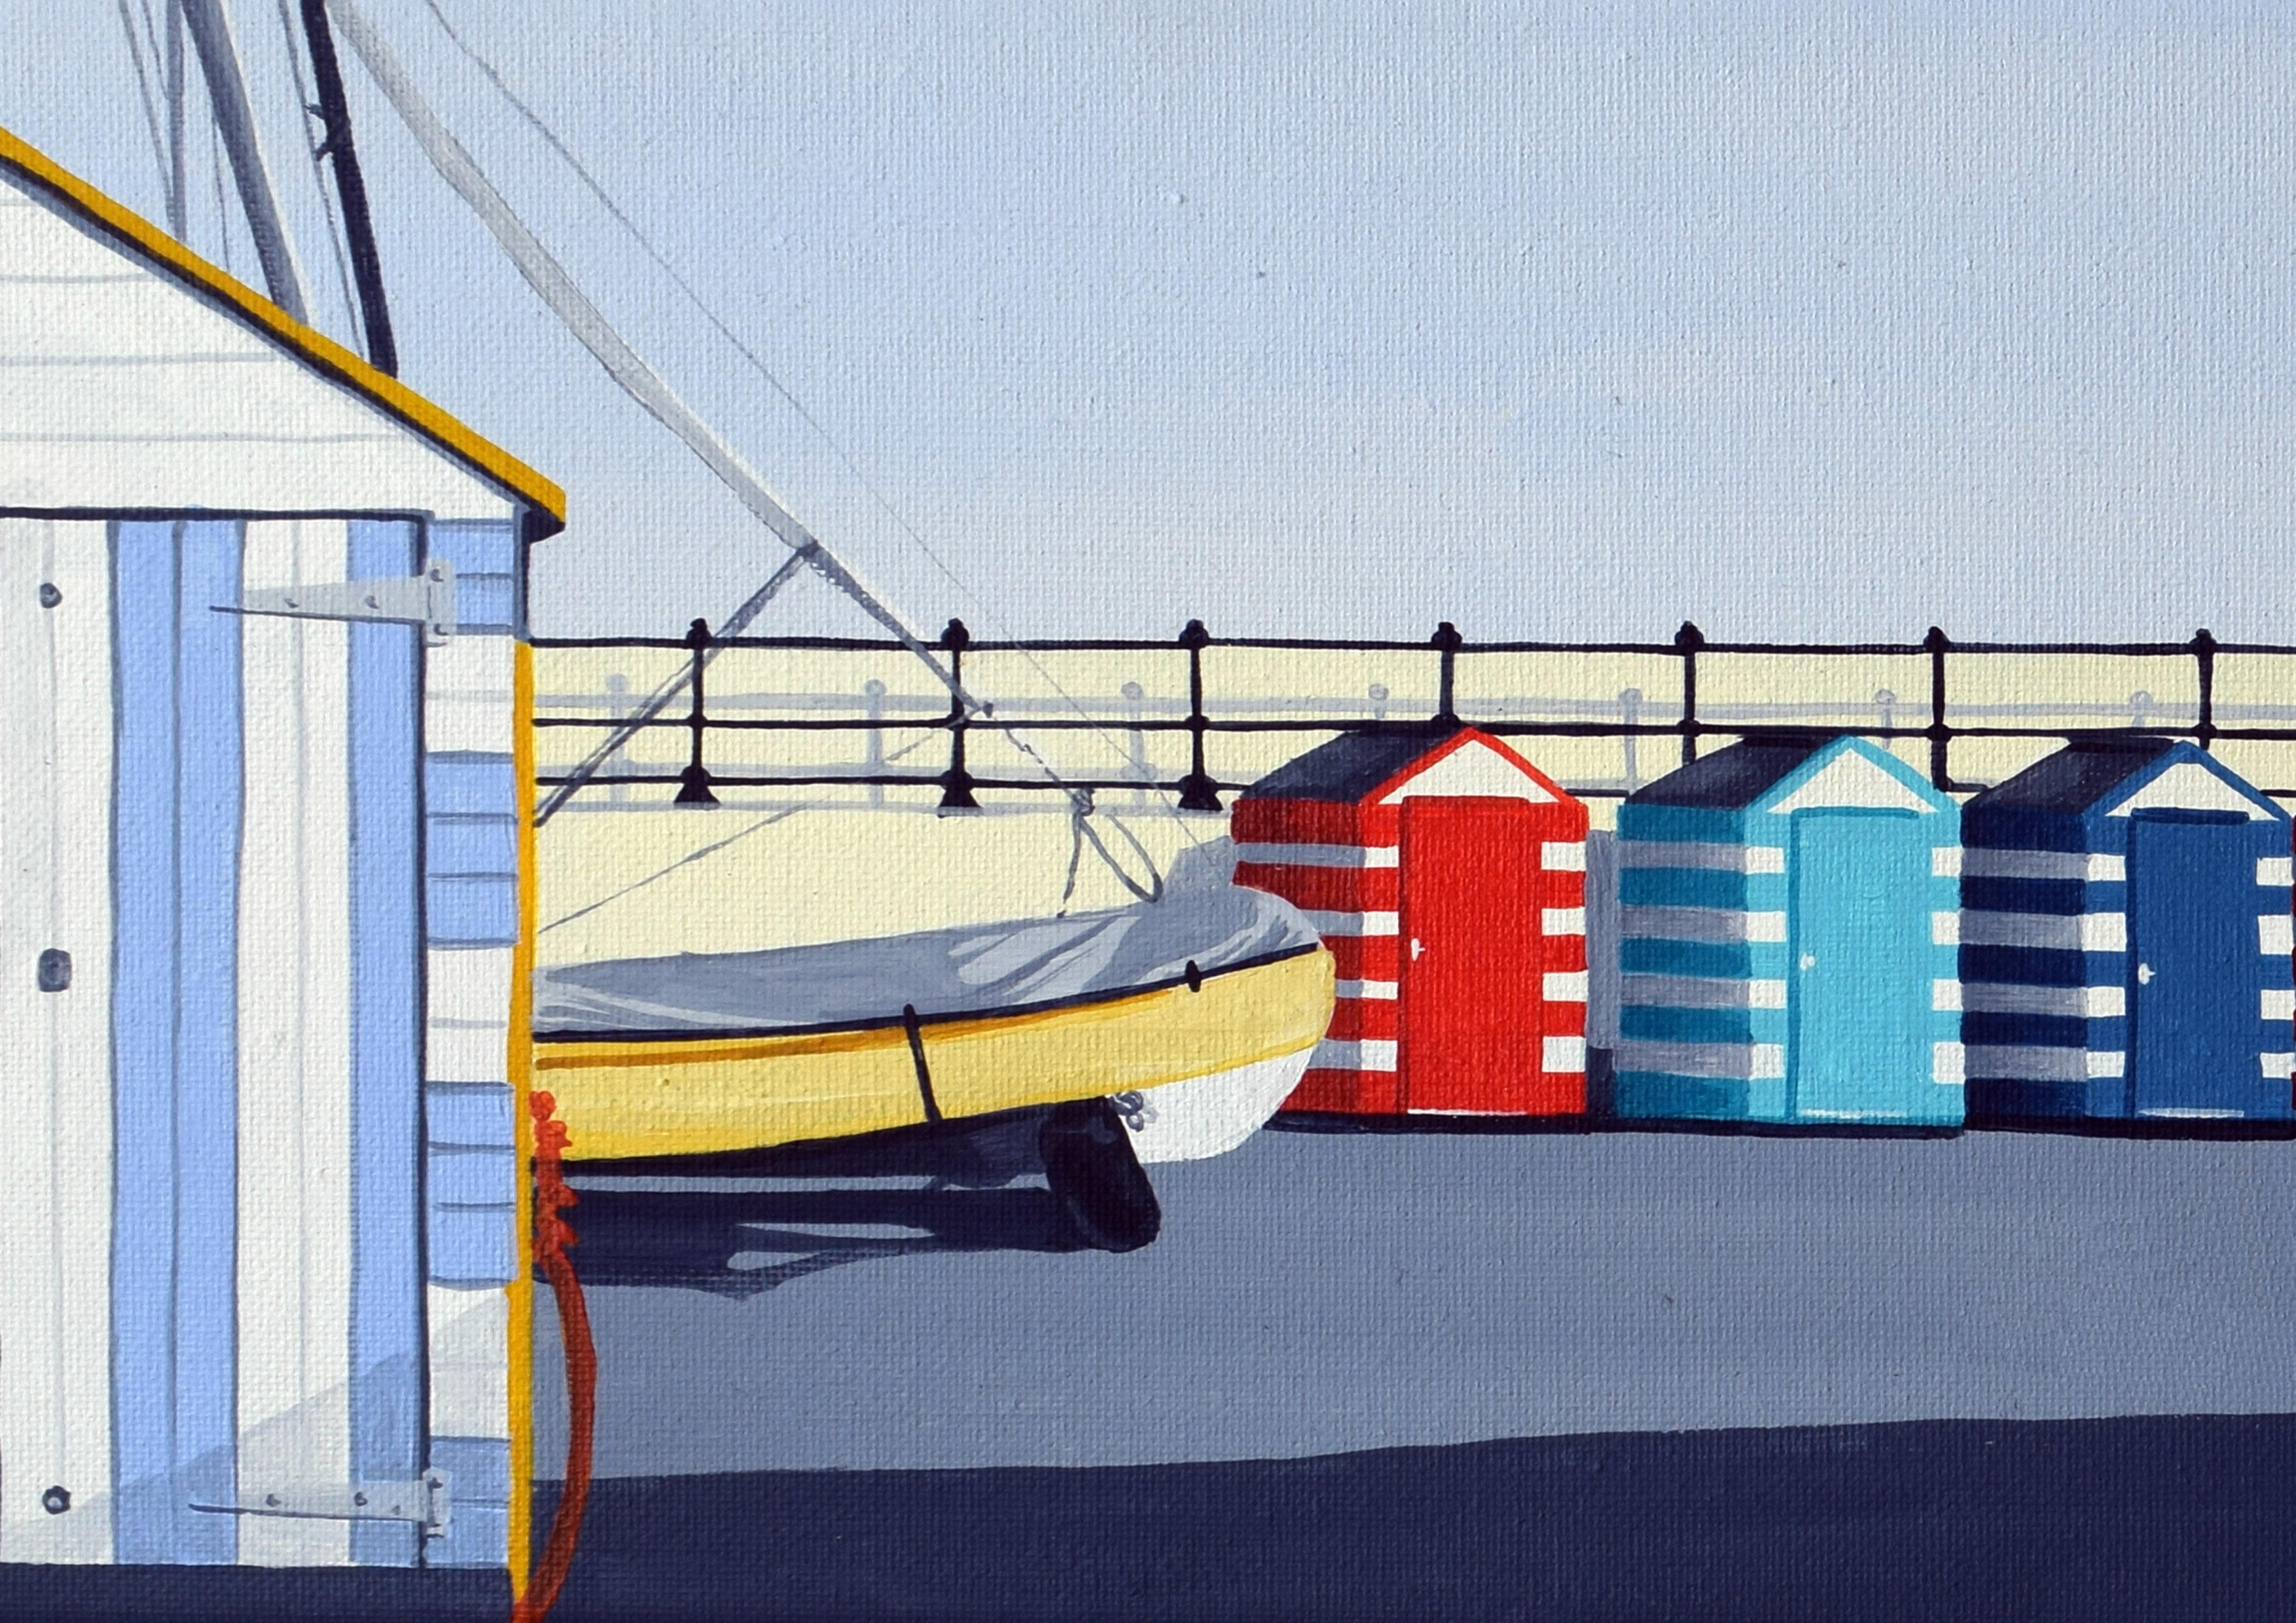 North Berwick Boat Yard and Beach Huts